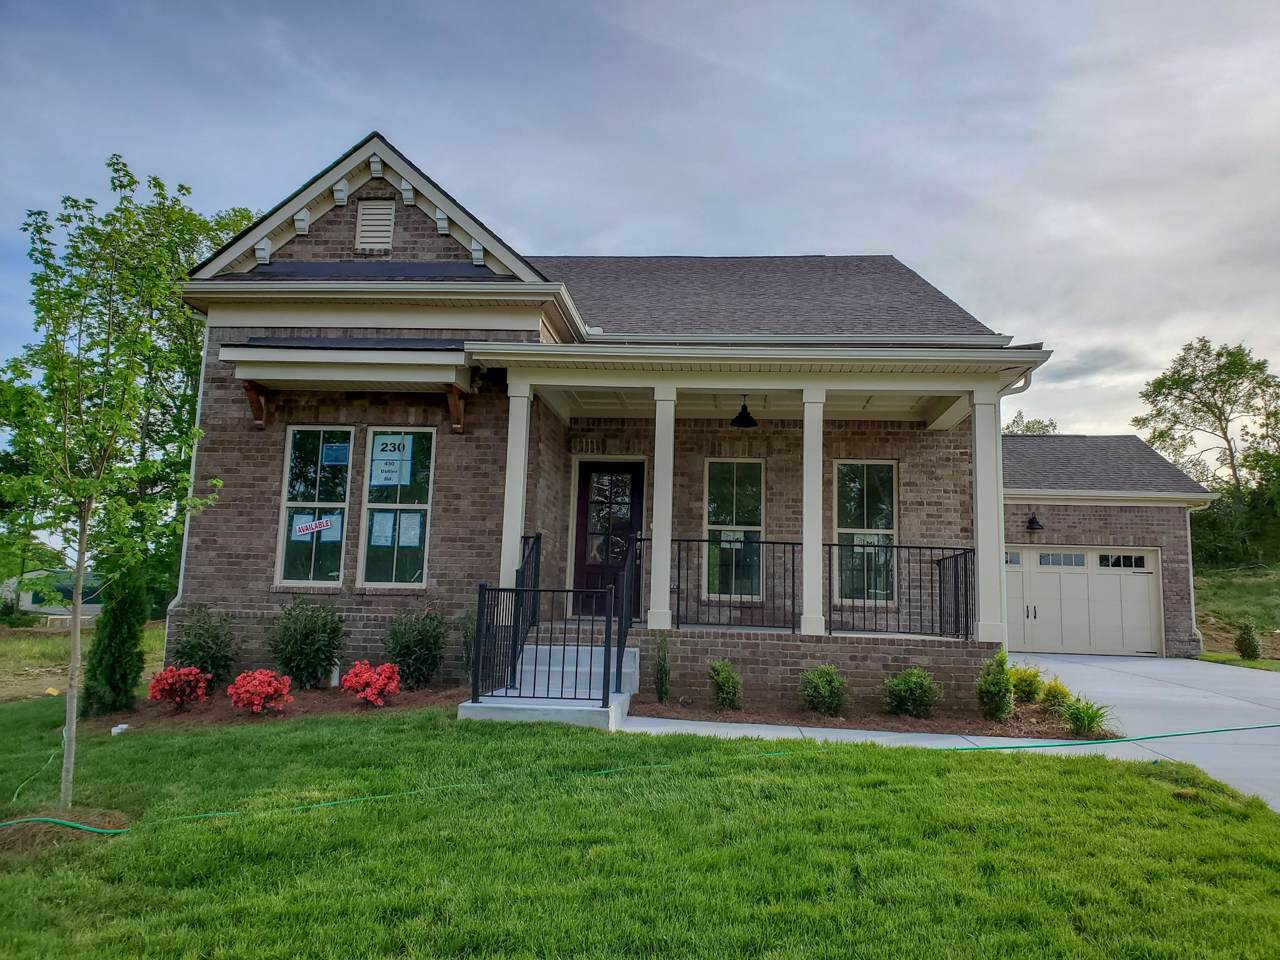 430 Butler Road, Lot #230 - Photo 1